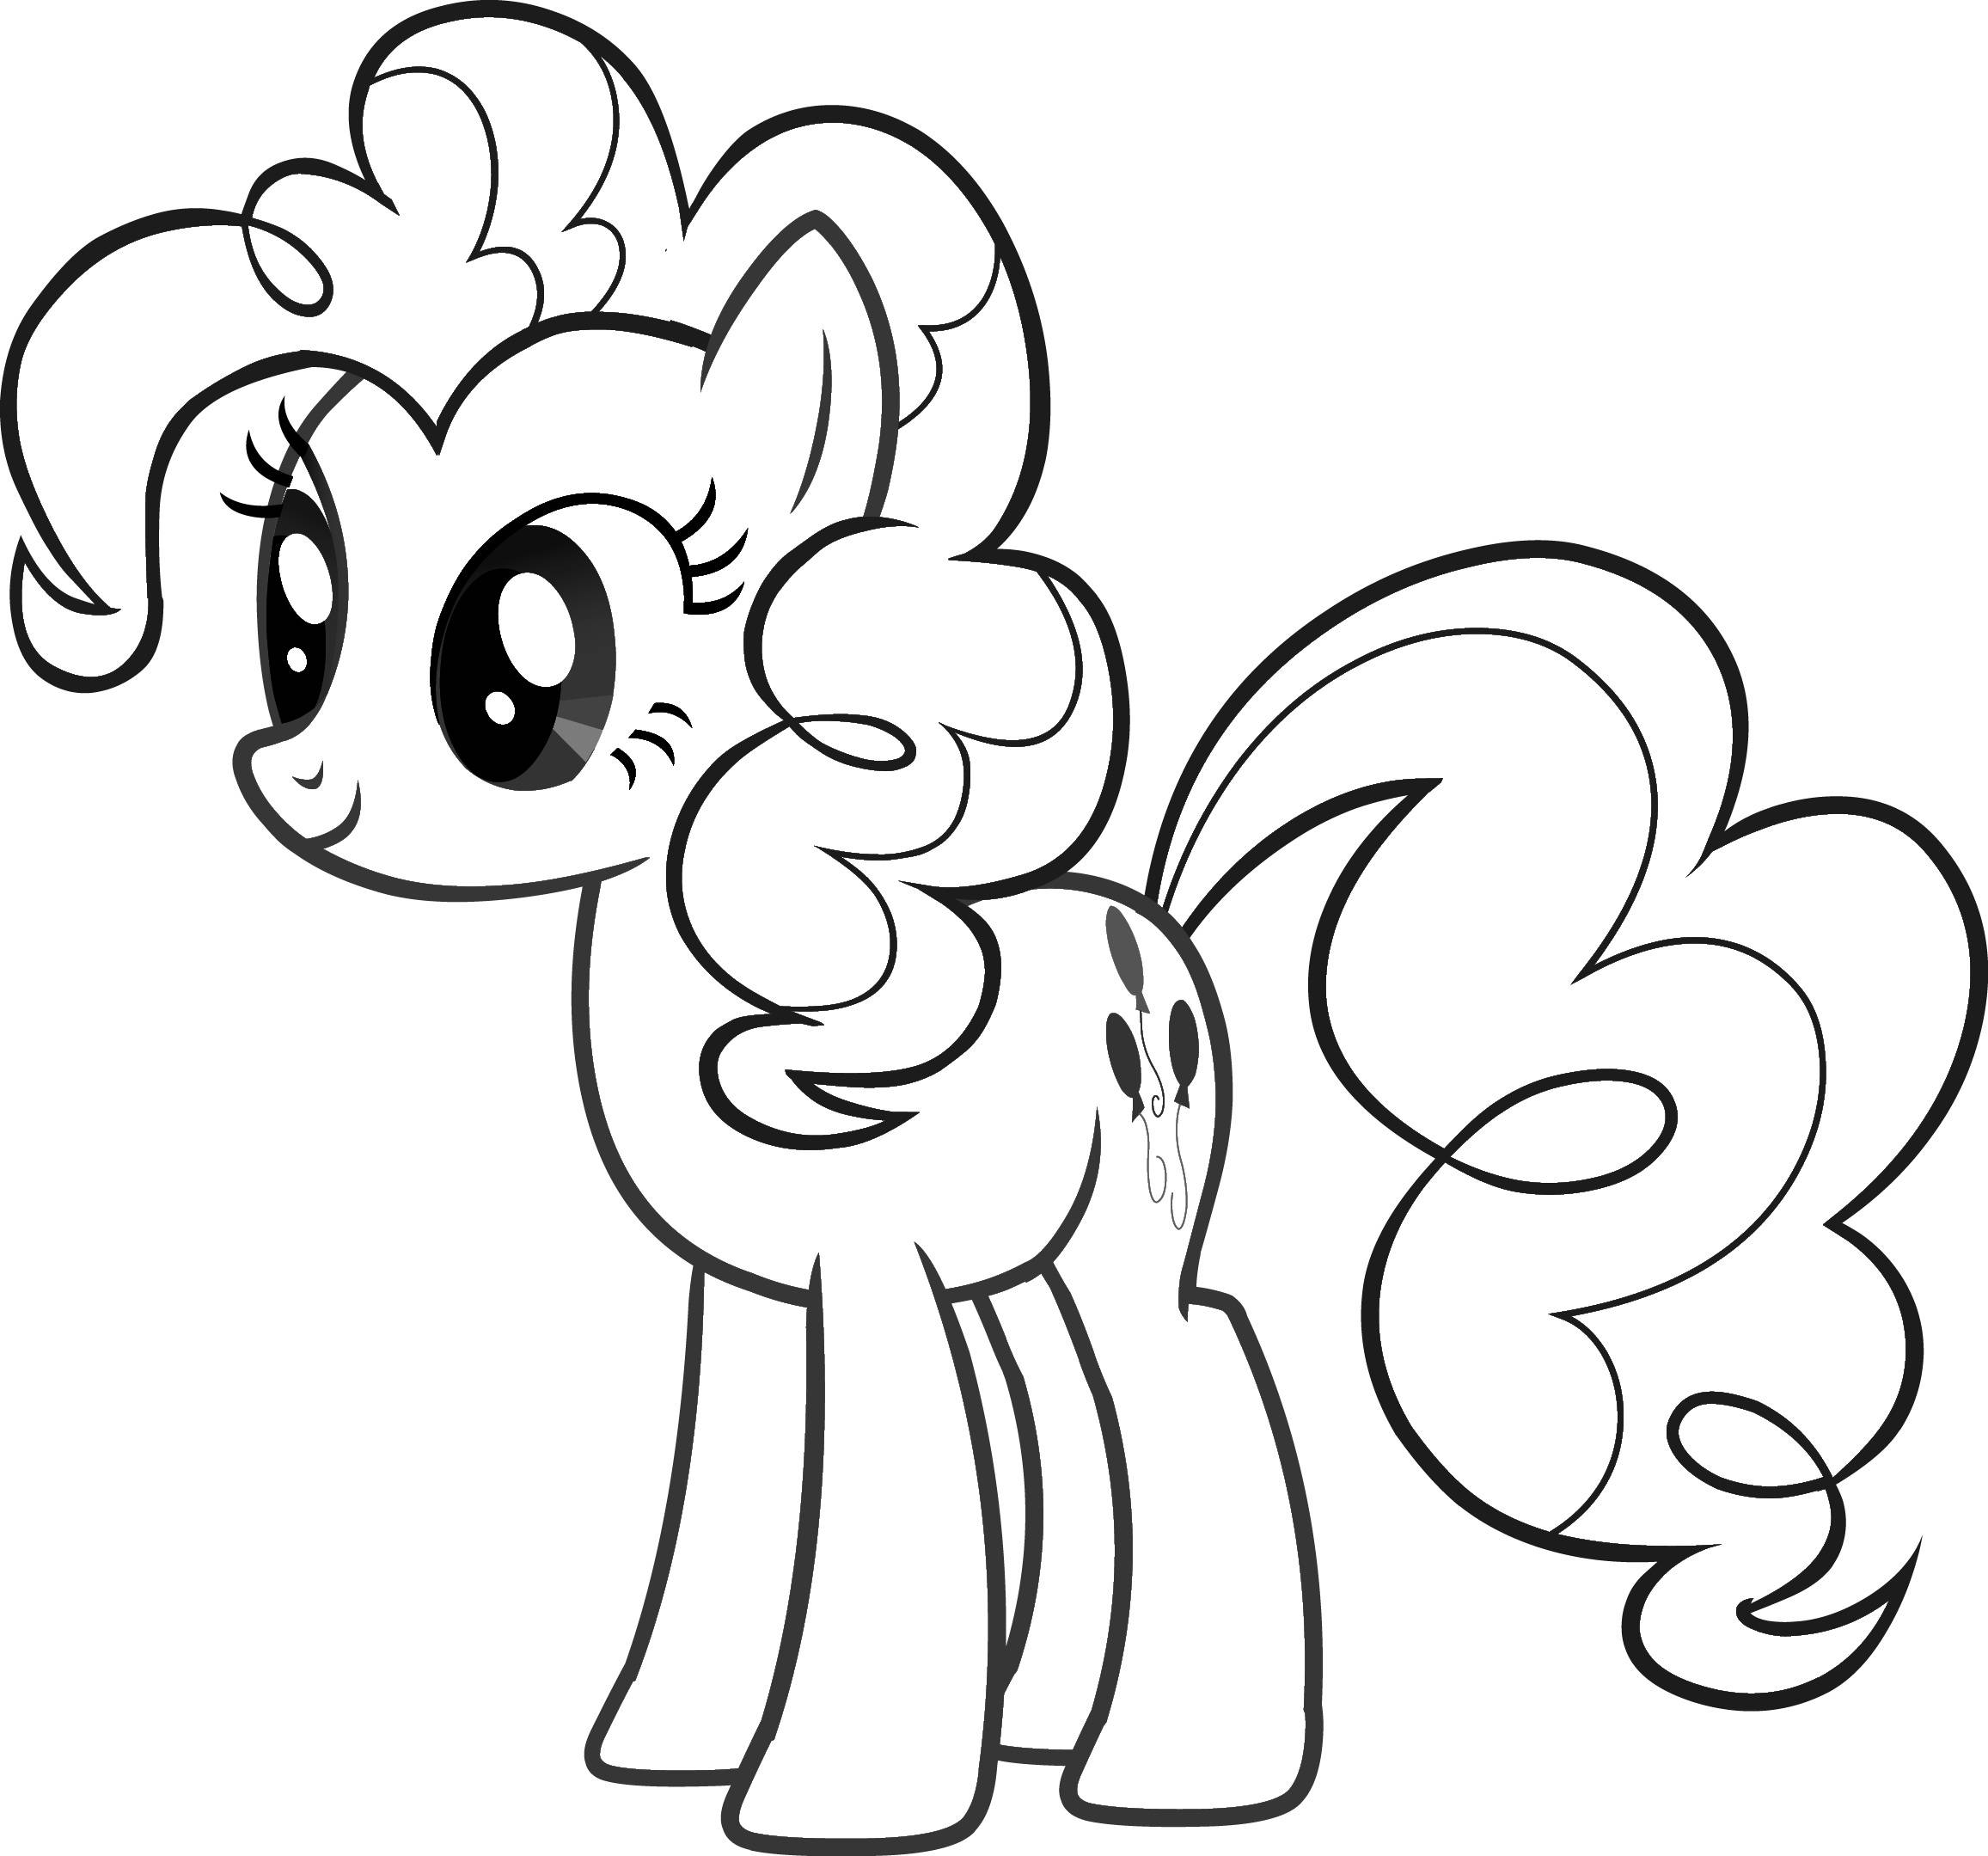 Uncategorized Free Colouring Pages free printable my little pony coloring pages for kids pages